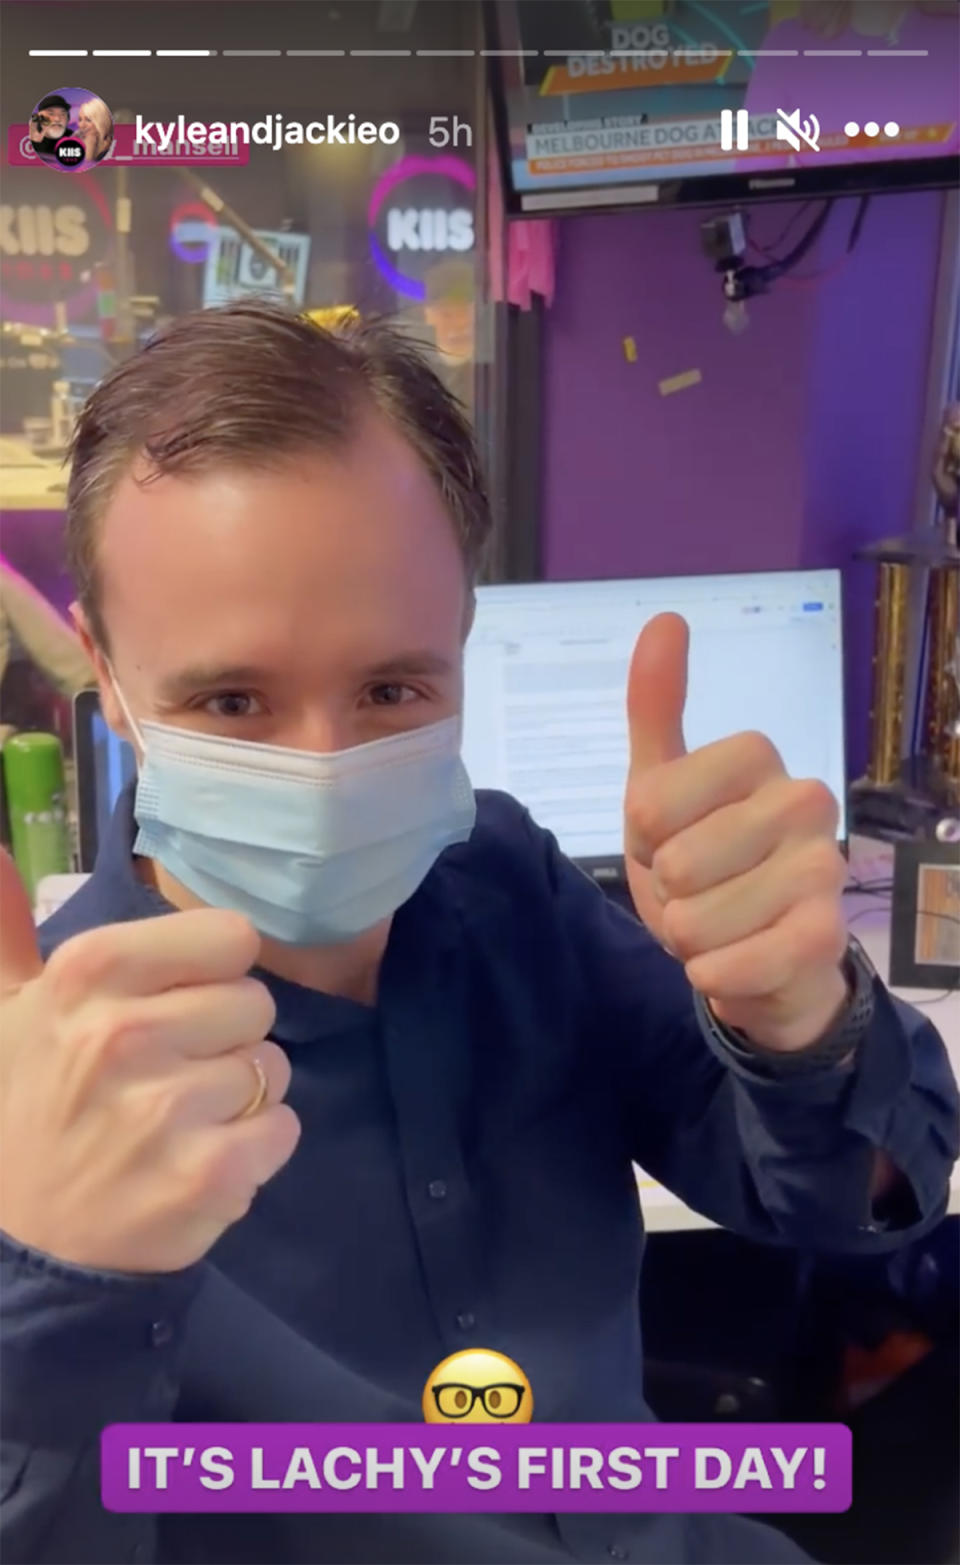 Beauty and the Geek star Lachy Mansell wears a face mask and gives a thumbs up from his desk at his new job on KIIS FM's The Kyle & Jackie O Show